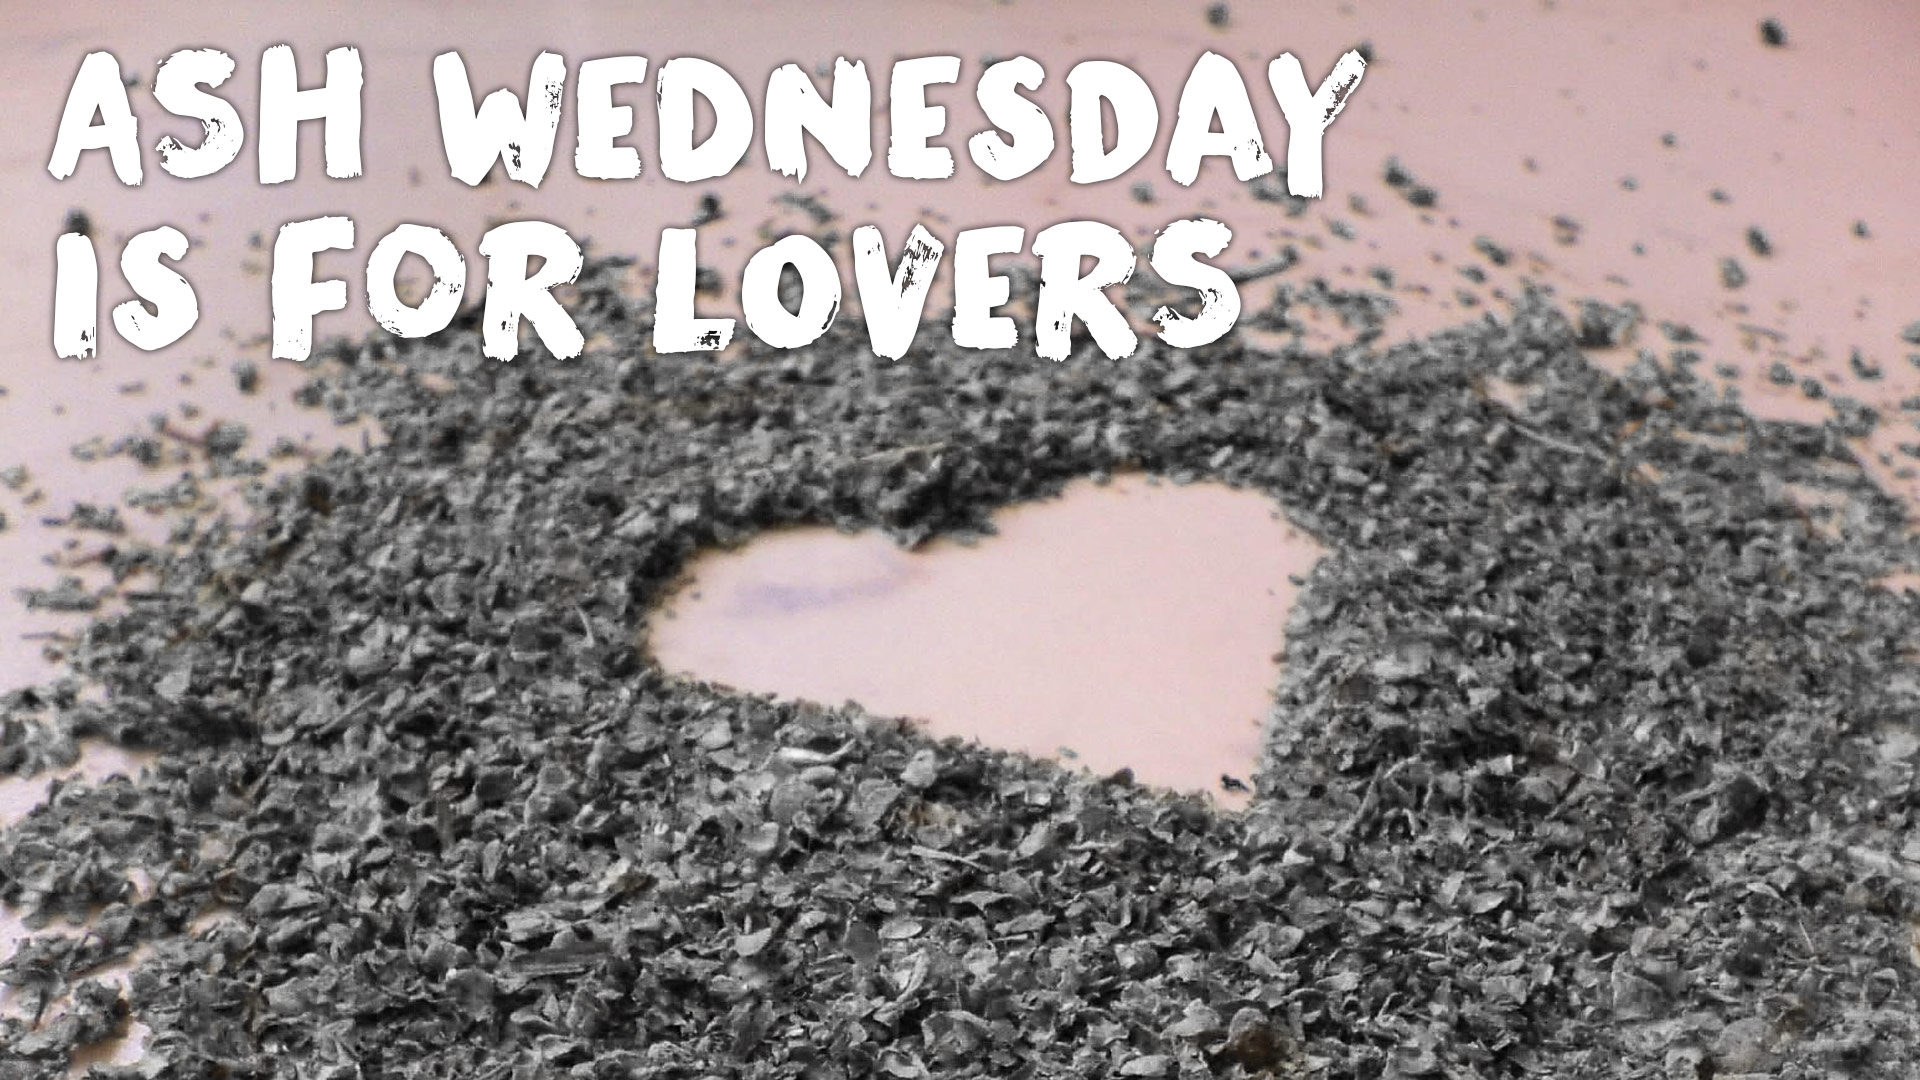 Ash Wednesday is for Lovers